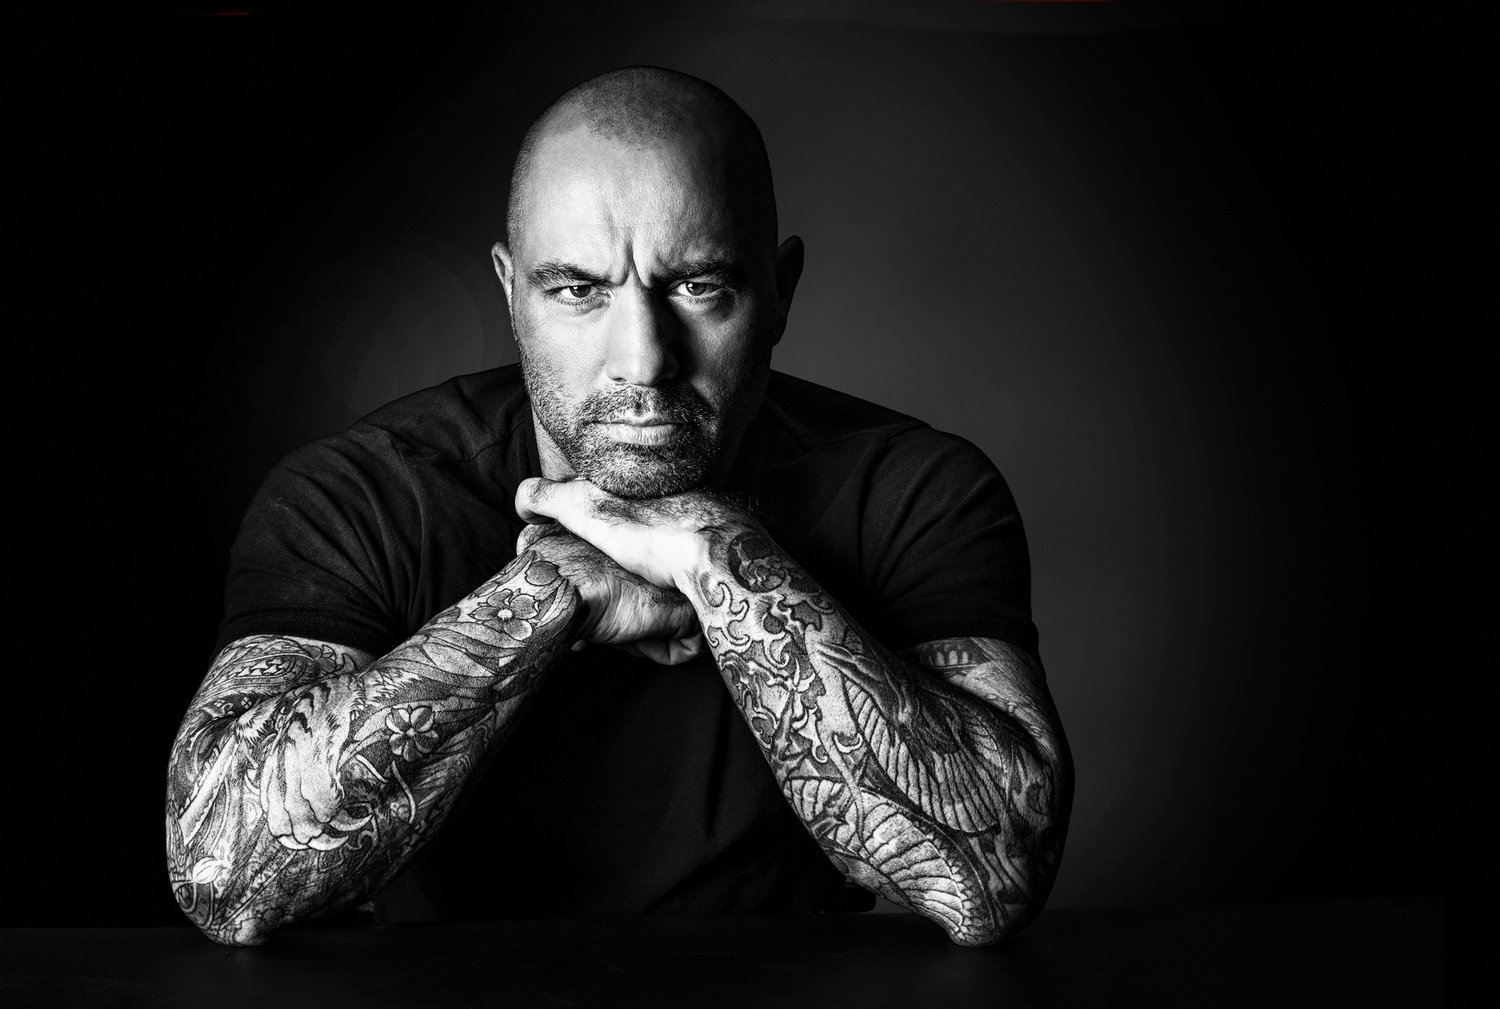 Joe Rogan Married Life Insight With Wife Jessica Rogan, No Divorce Issue